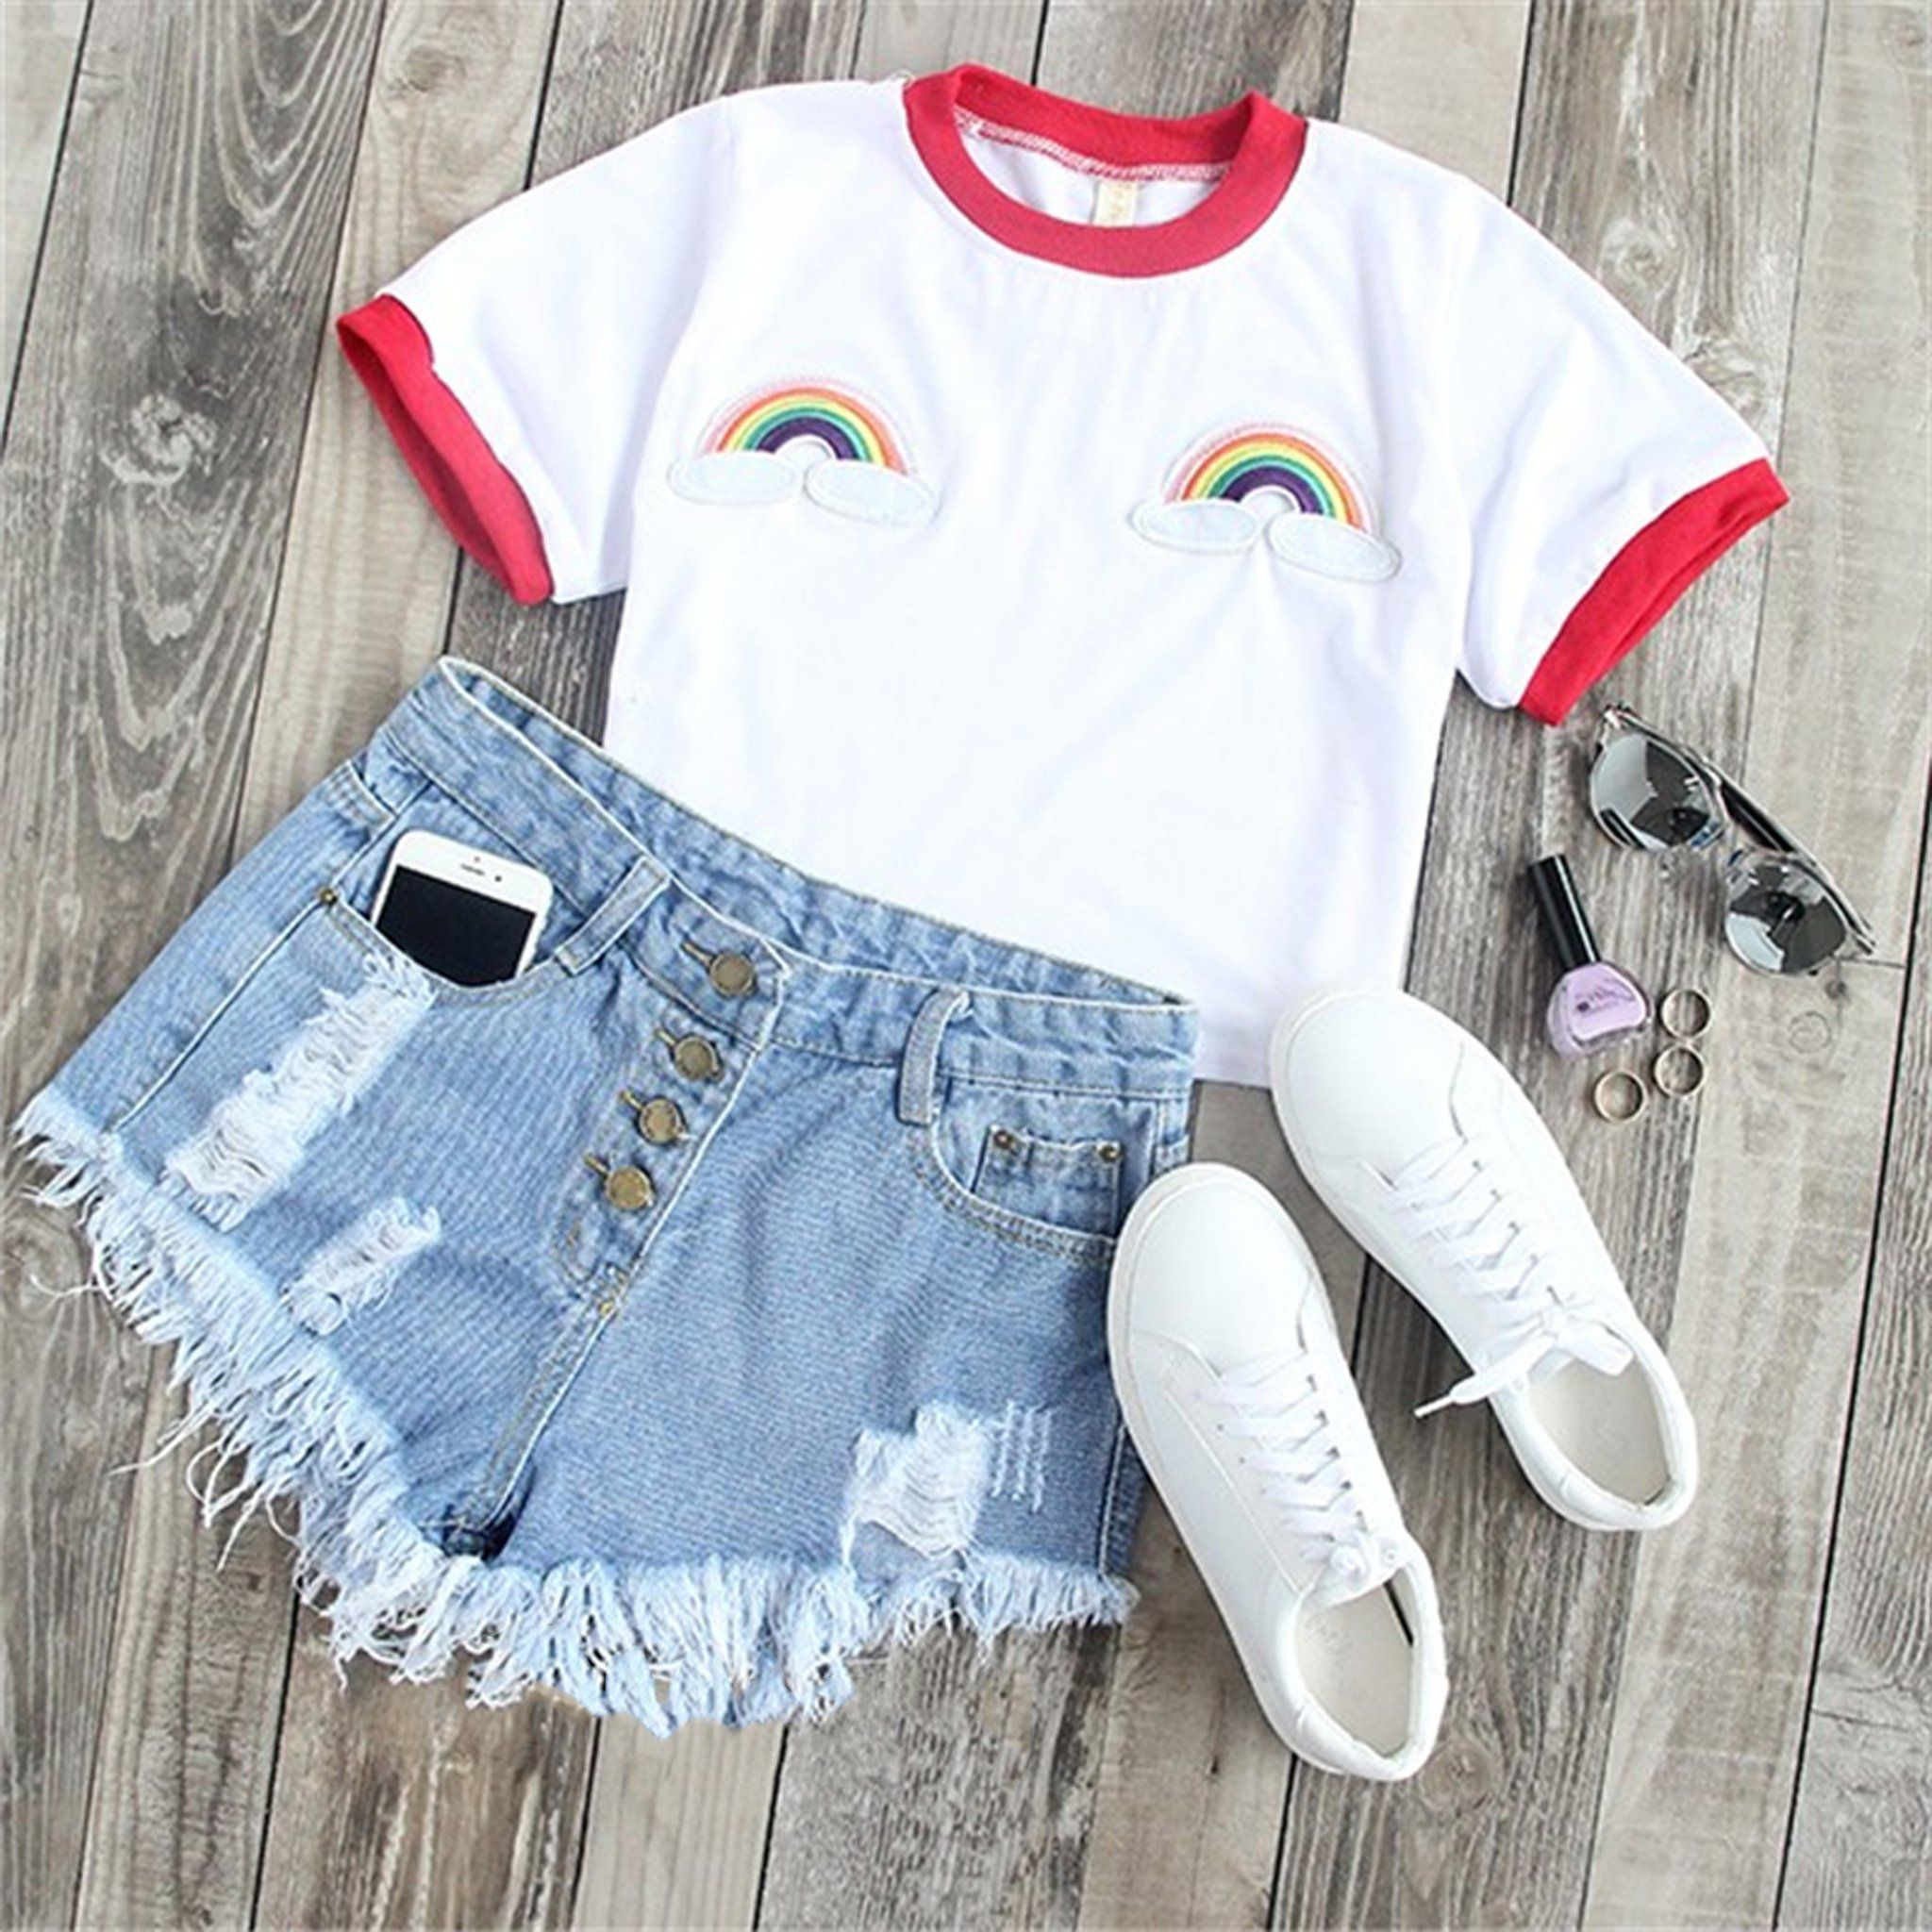 f335e3cfef8749 Cute Summer Outfit Ideas for Teen Girls with Shorts for School or Vacation  - Casual Rainbow Embroidered T-Shirt Tee in White - Ideas lindas del equipo  del ...